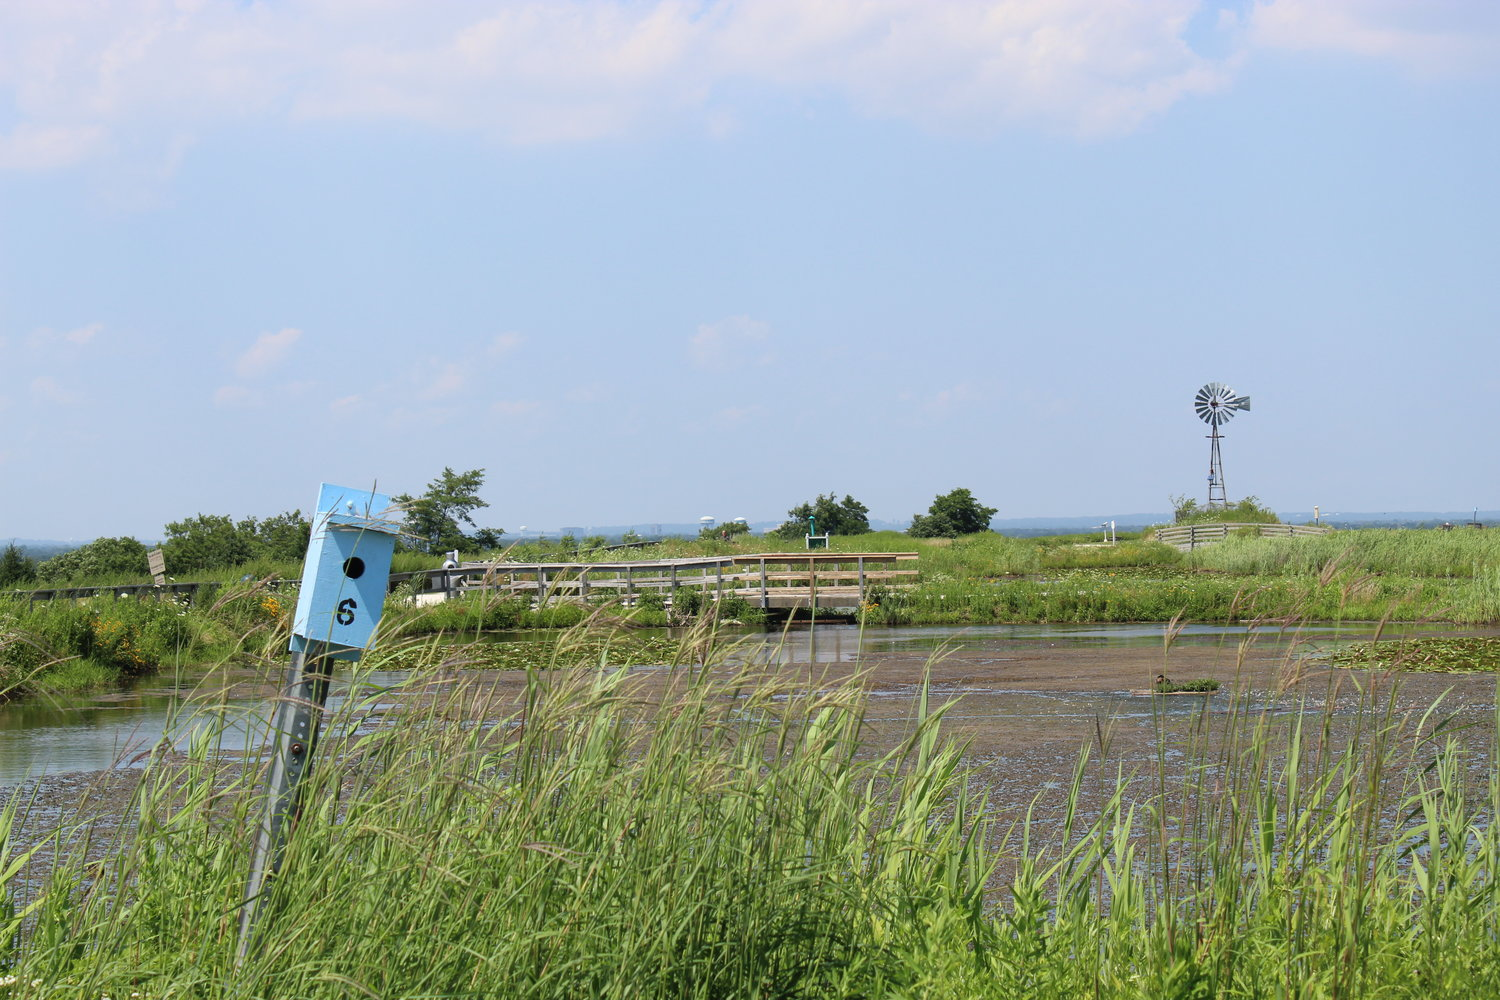 The preserve's seminal windmill could be seen in the background from the south side of the pond.